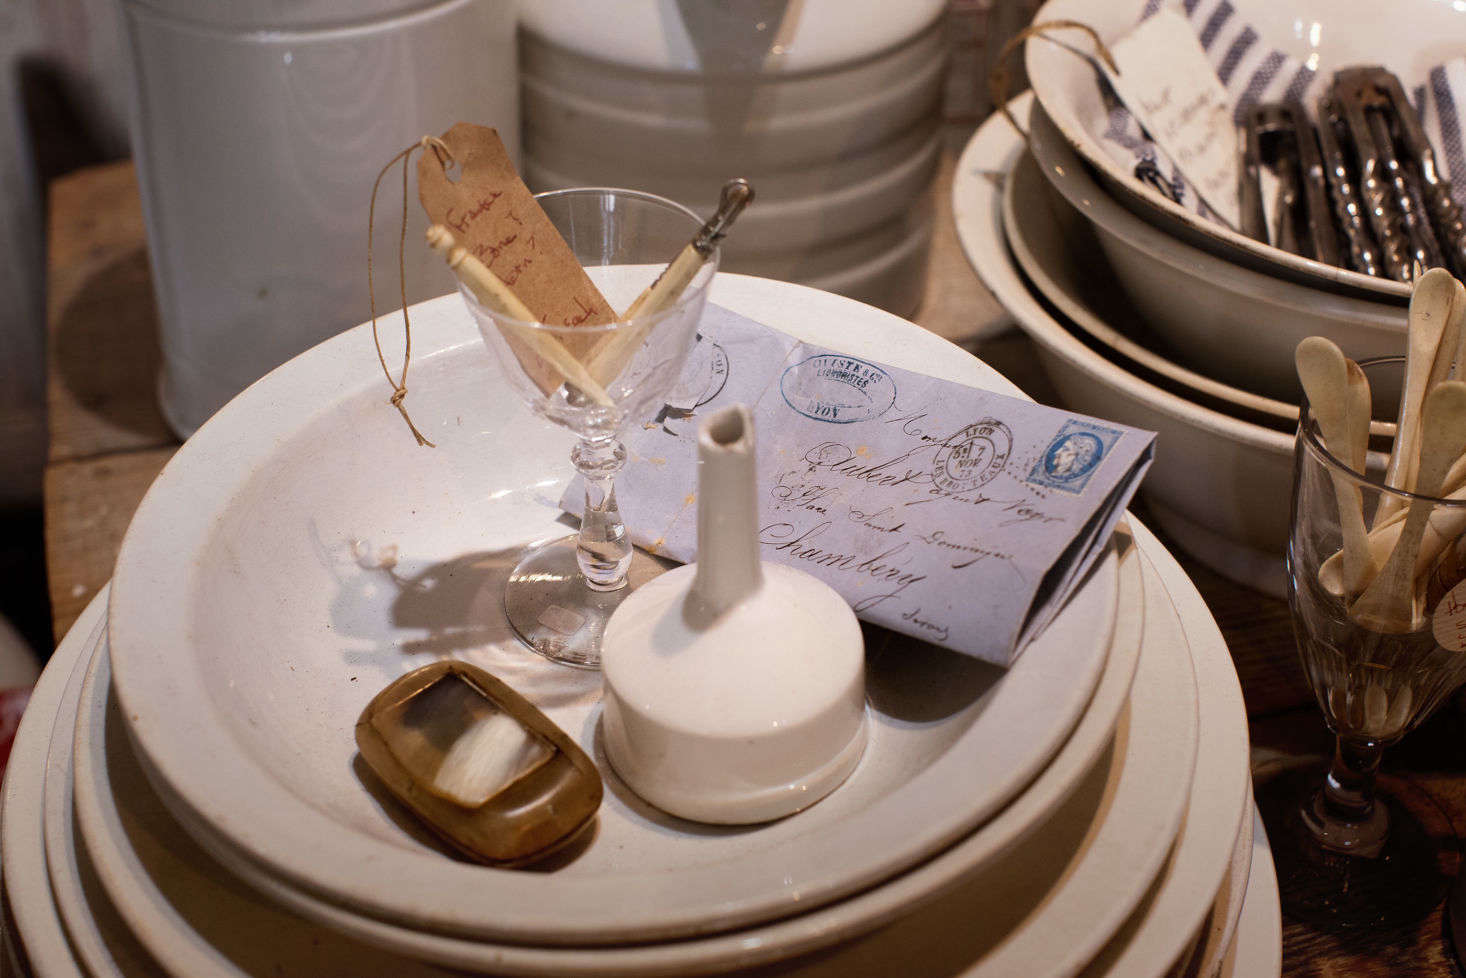 During their winters in France, Sharon and Paul scour flea markets for their fabulous finds, including textiles, silverware, baskets, ephemera, and tons of ironstone.